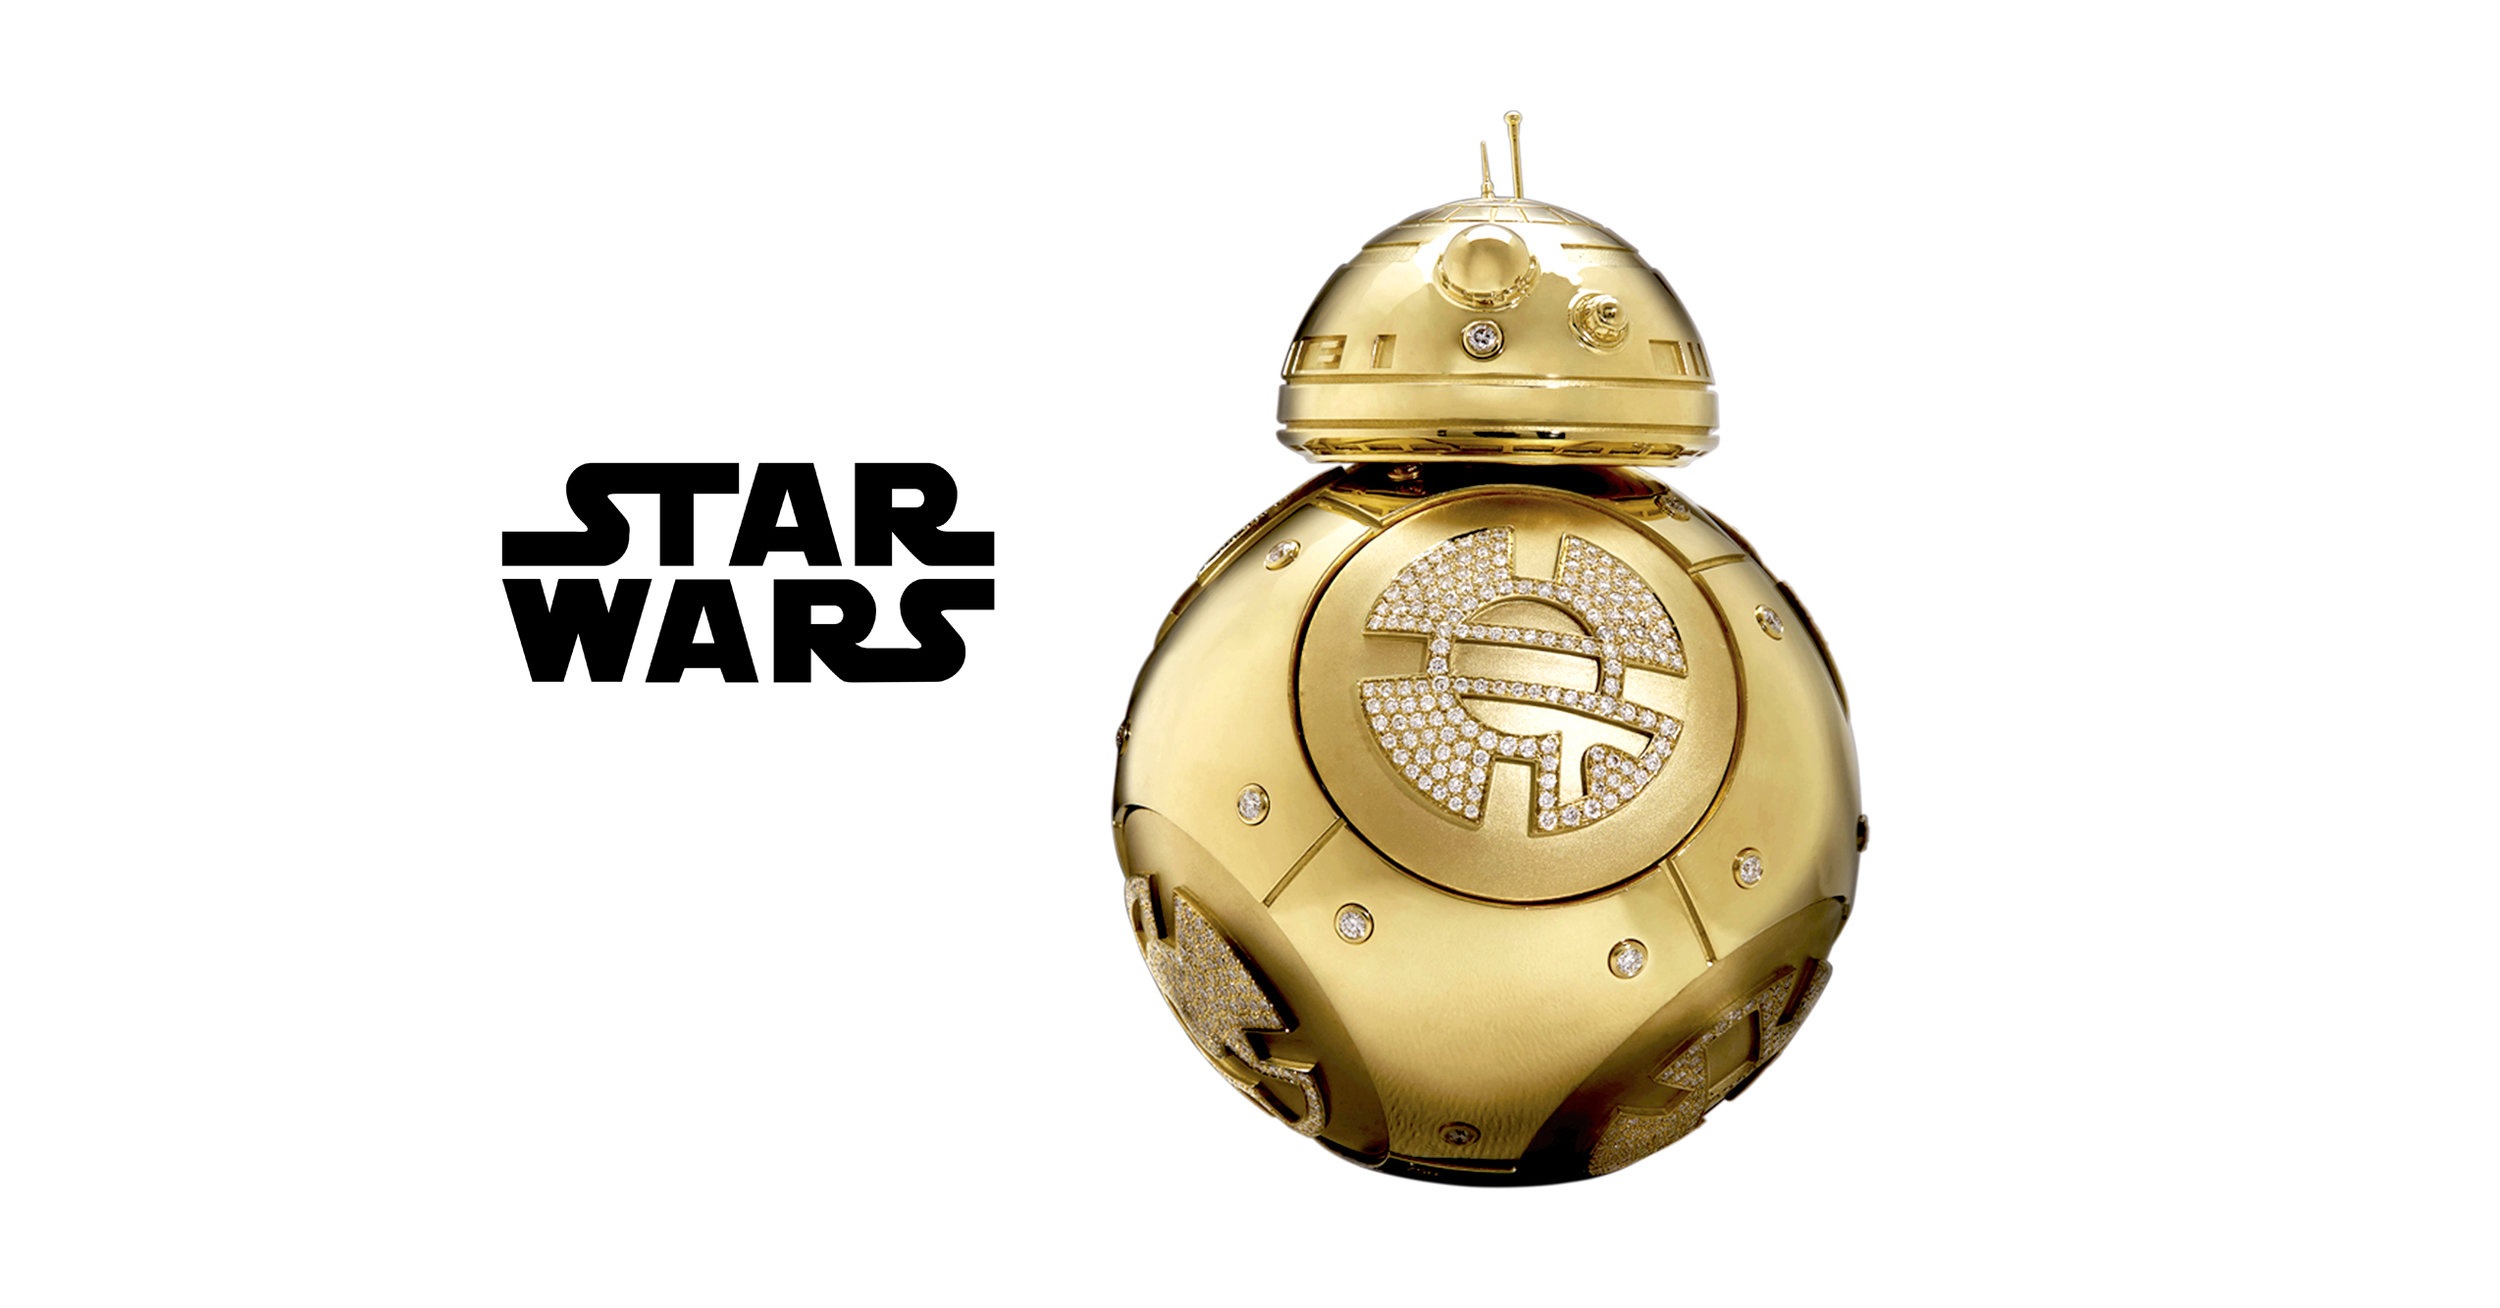 BB8 STAR WARS - ELITE CASTING IS PROUD TO BE A PART OF FUNDRAISING BB8 STAR WARS EVENT IN NEW YORK